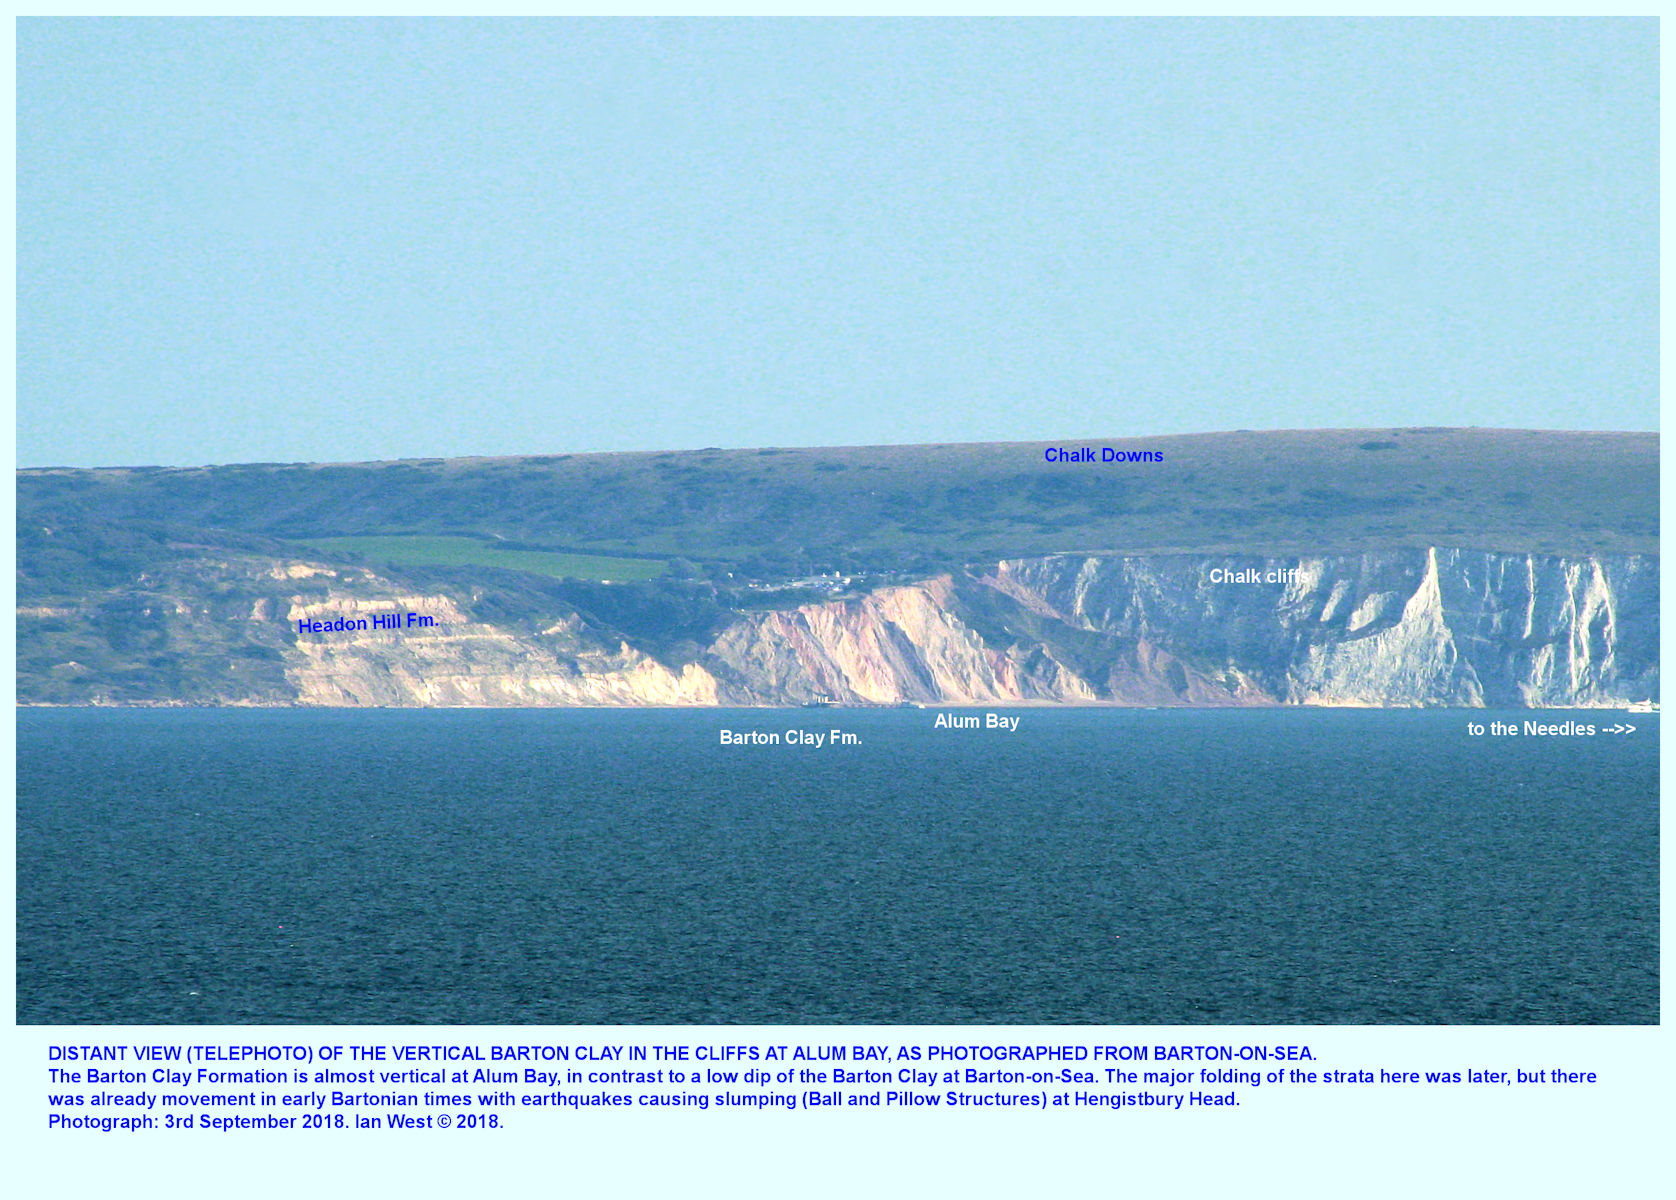 Alum Bay, Isle of Wight, with Barton Clay in the cliff, seen with telephoto lens, in the distance from Barton-on-Sea, Hampshire, 3rd September 2018